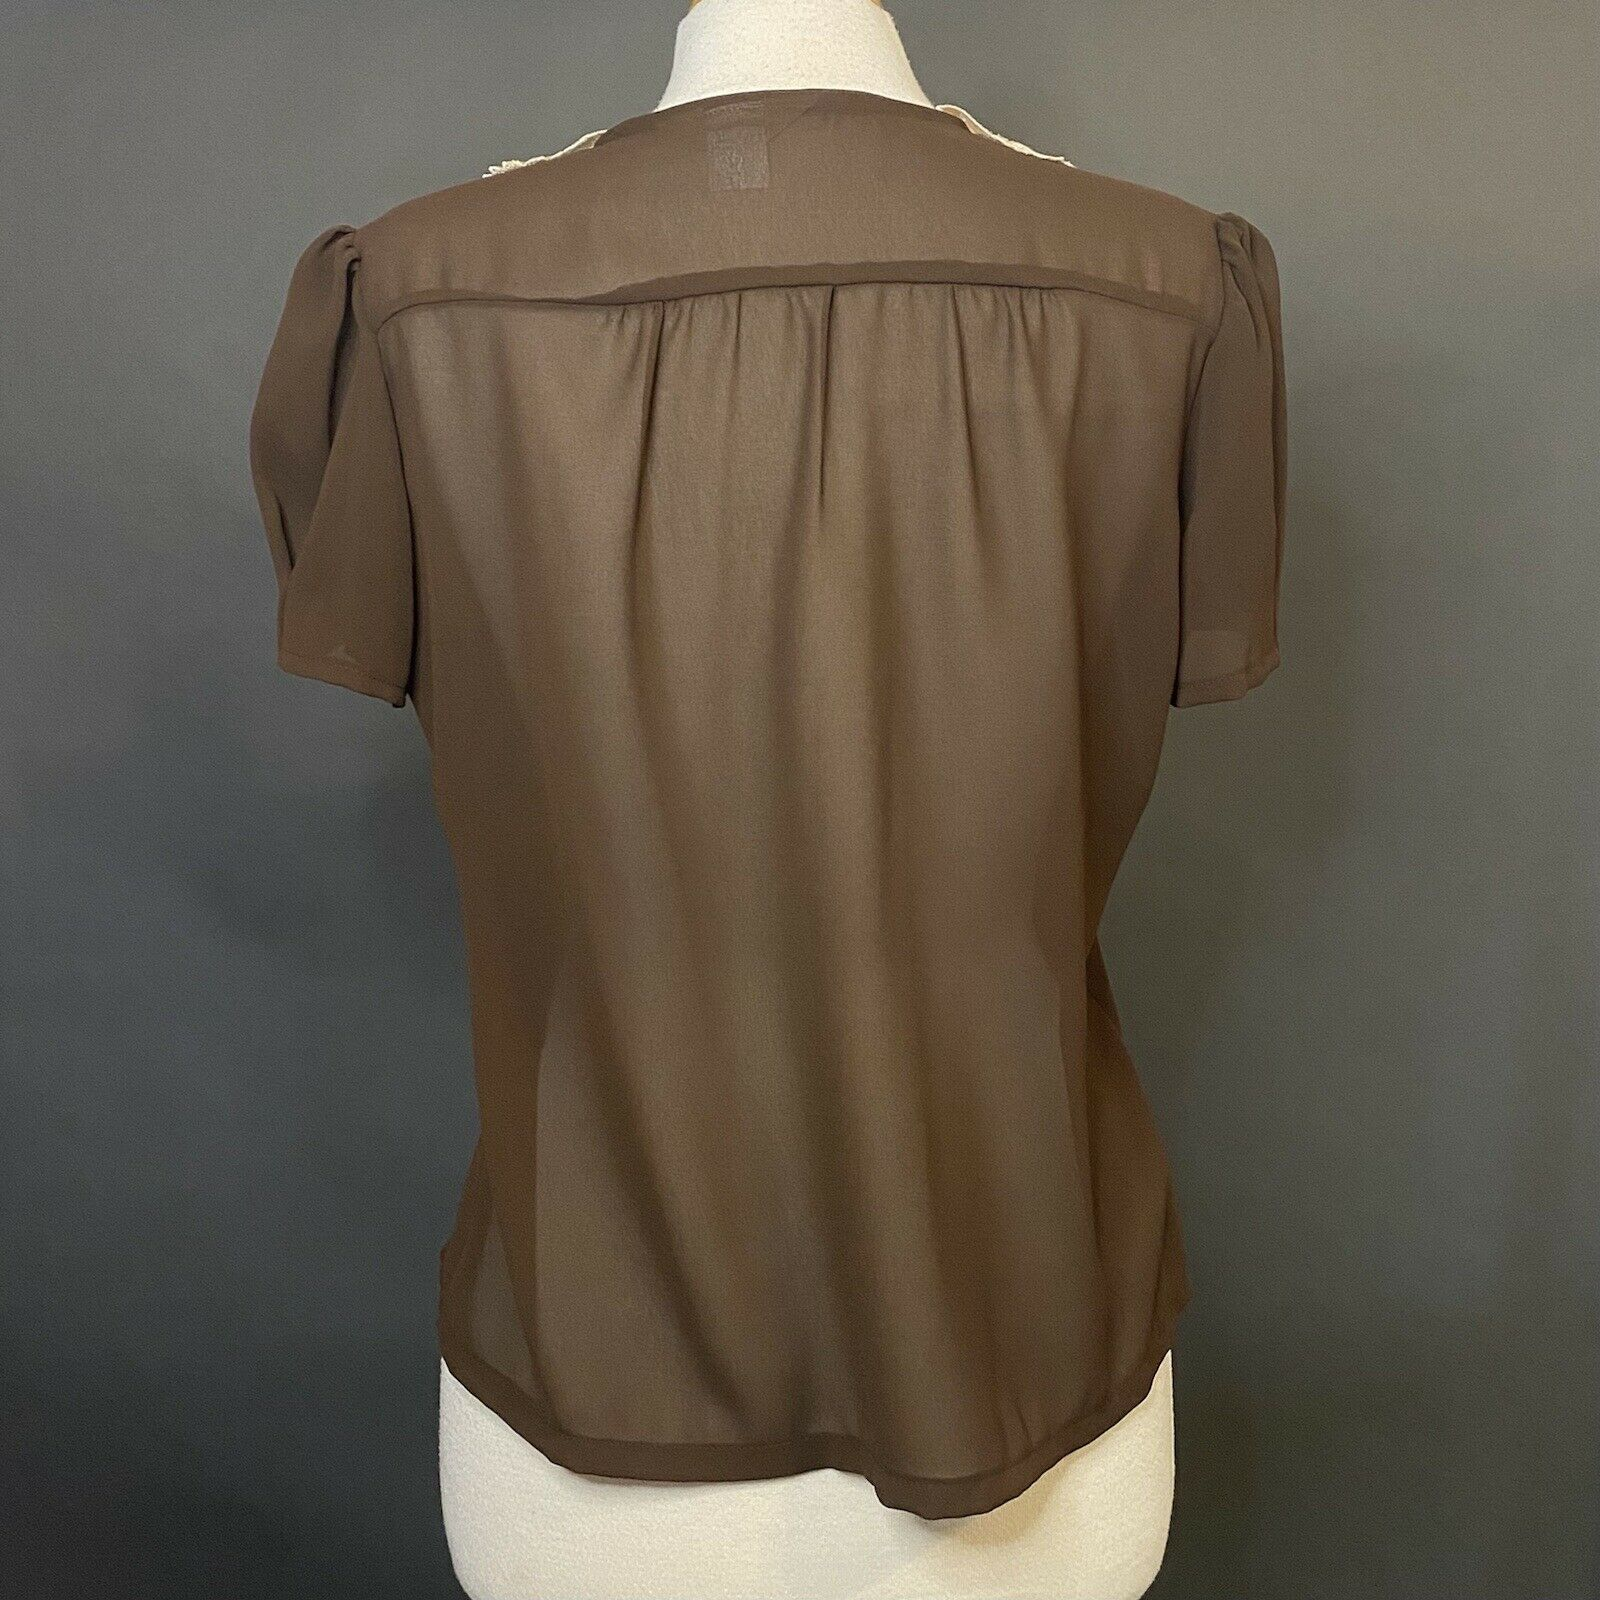 marie claire of california brown vintage button u… - image 2